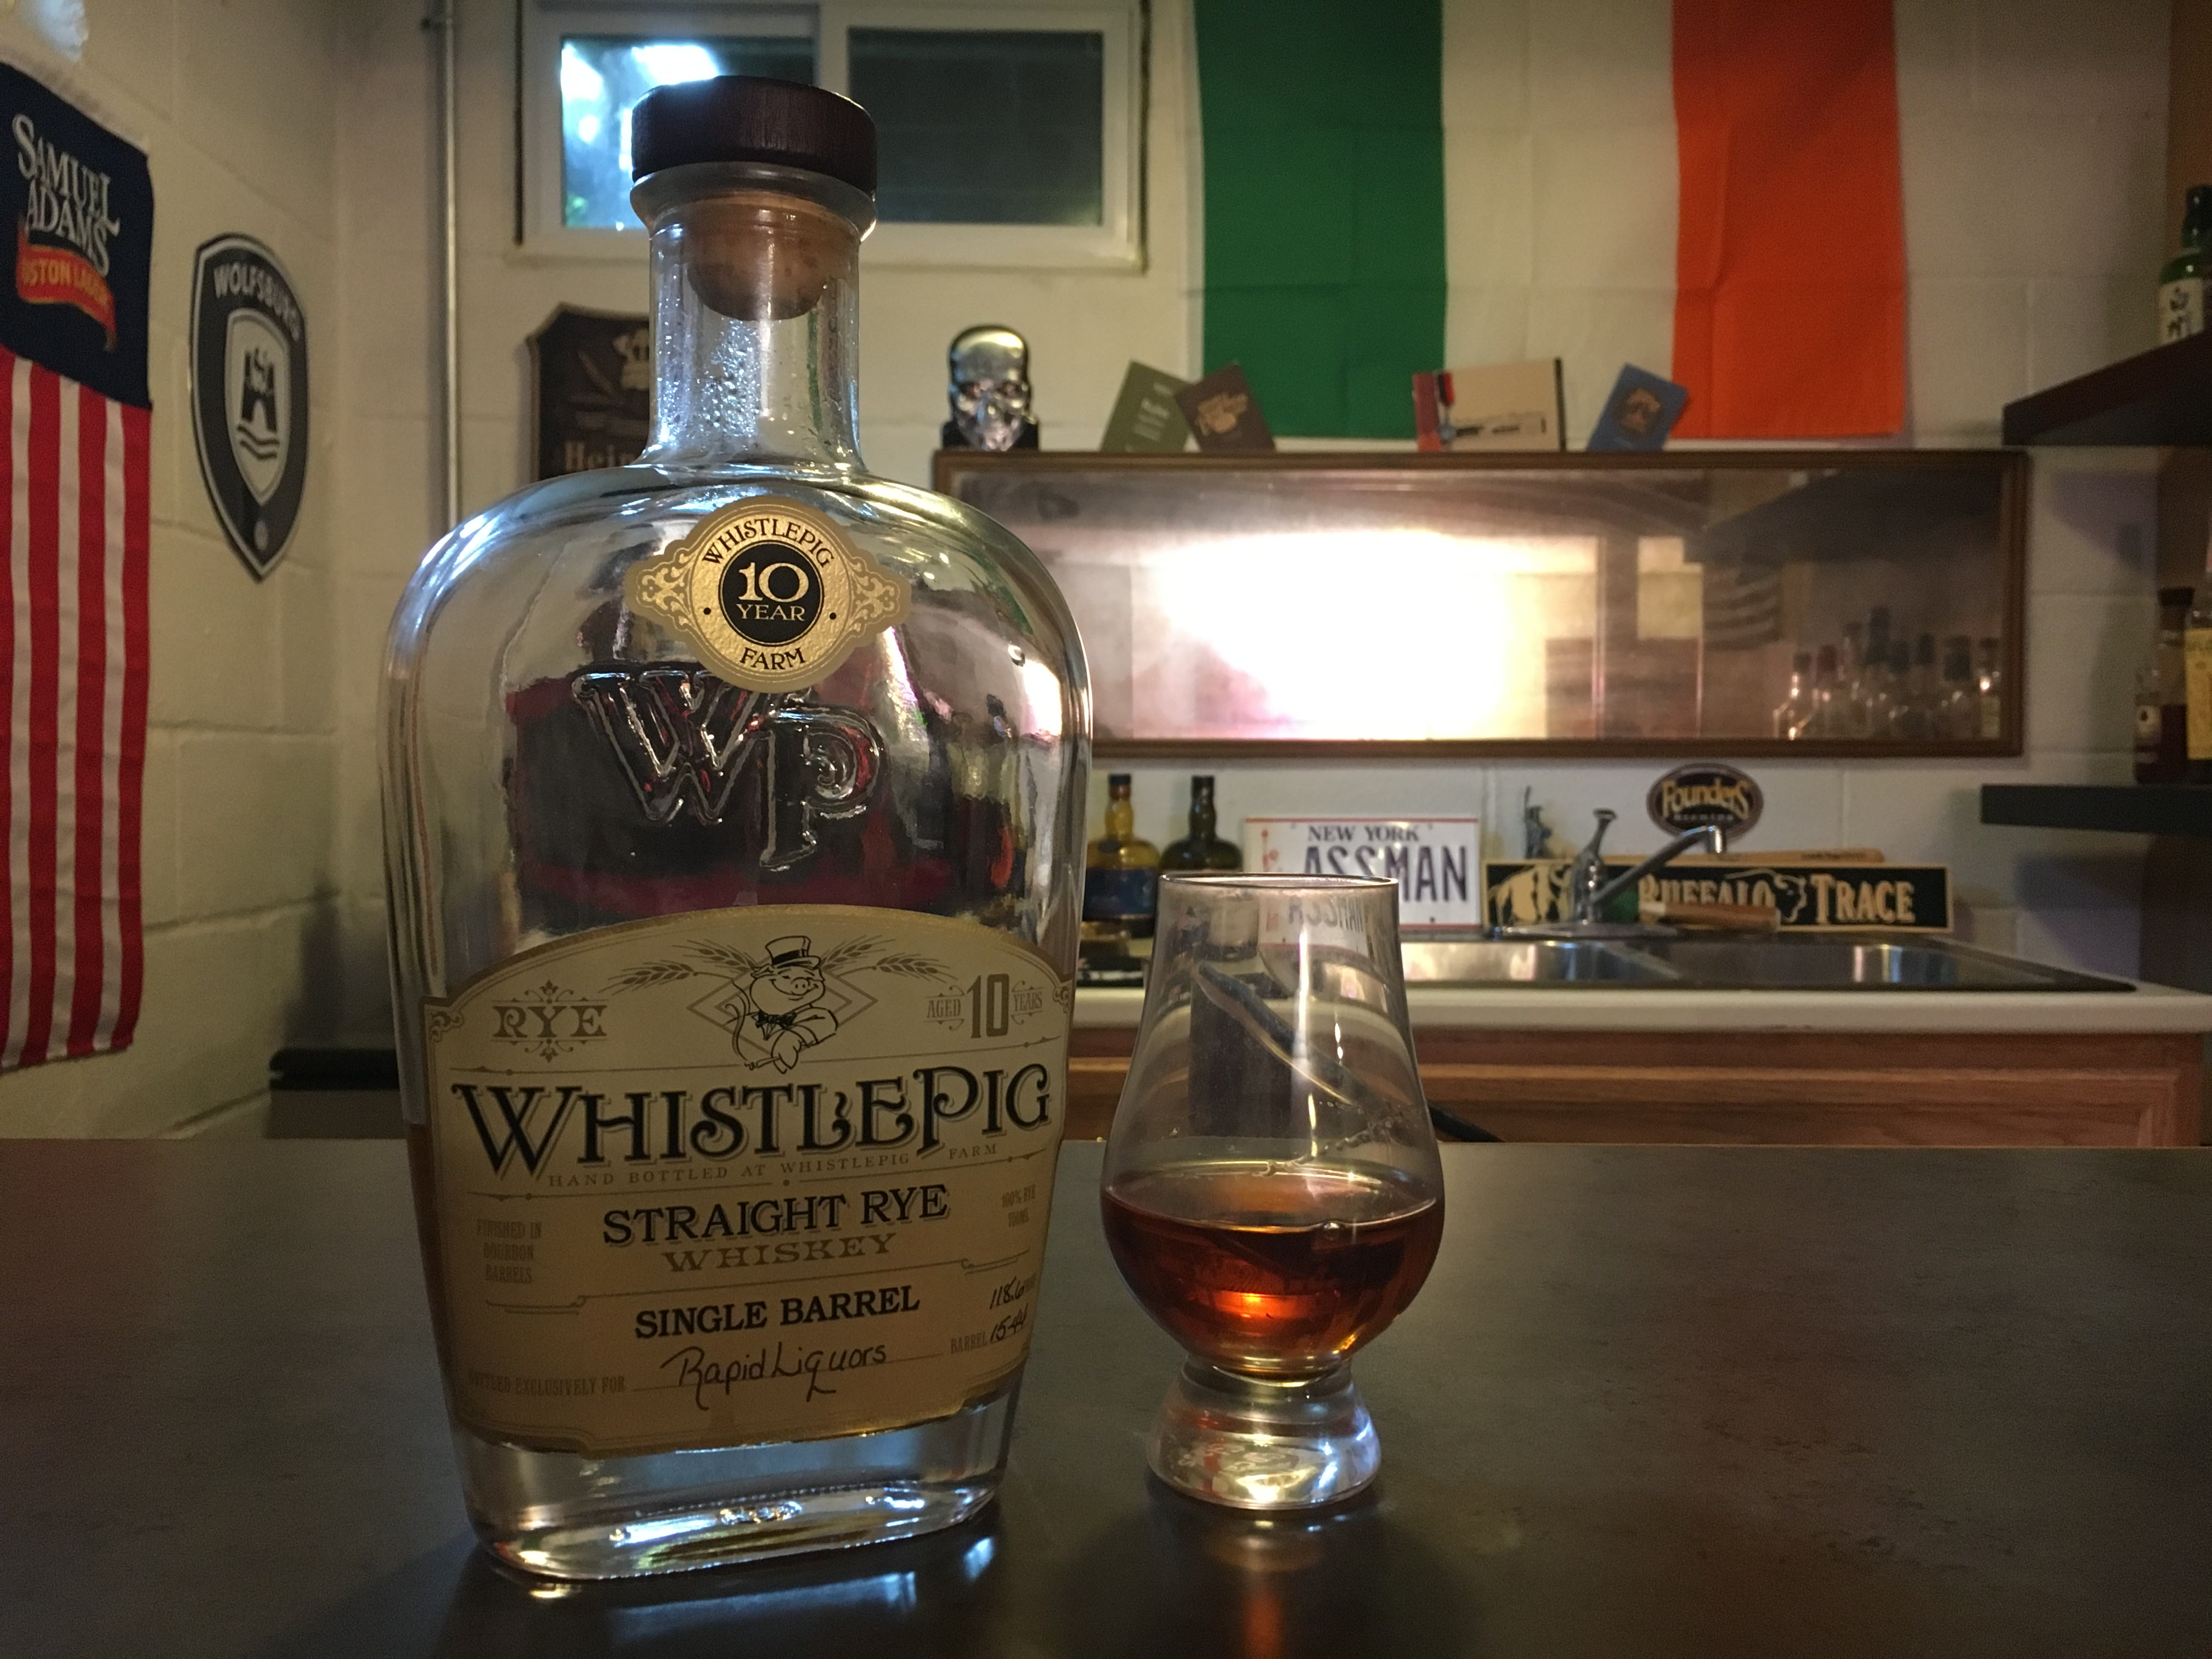 Whistlepig 10 Rapid